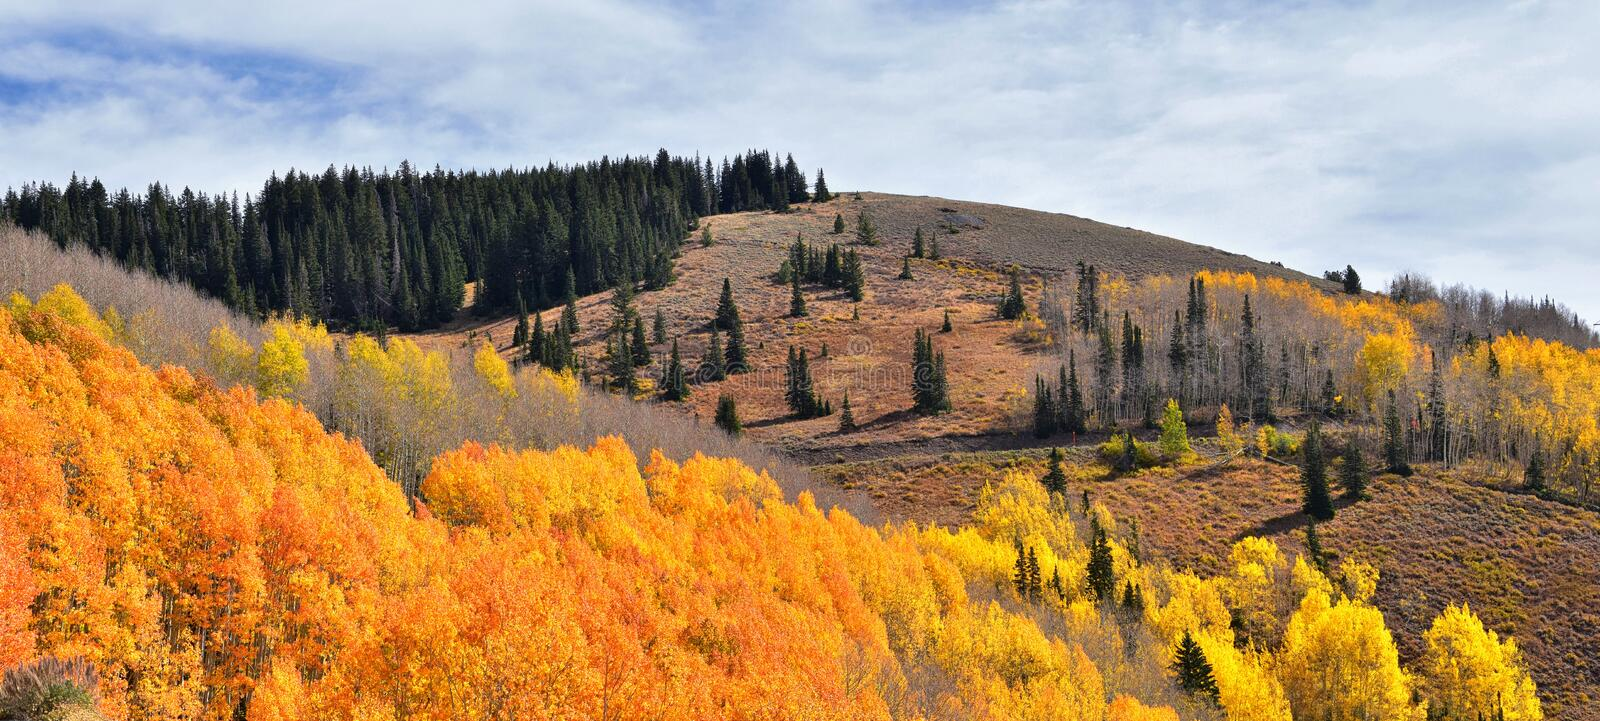 Guardsman Pass views of Panoramic Landscape of the Pass from the Brighton side by Midway and Heber Valley along the Wasatch Front. Rocky Mountains, Fall Leaf royalty free stock photography